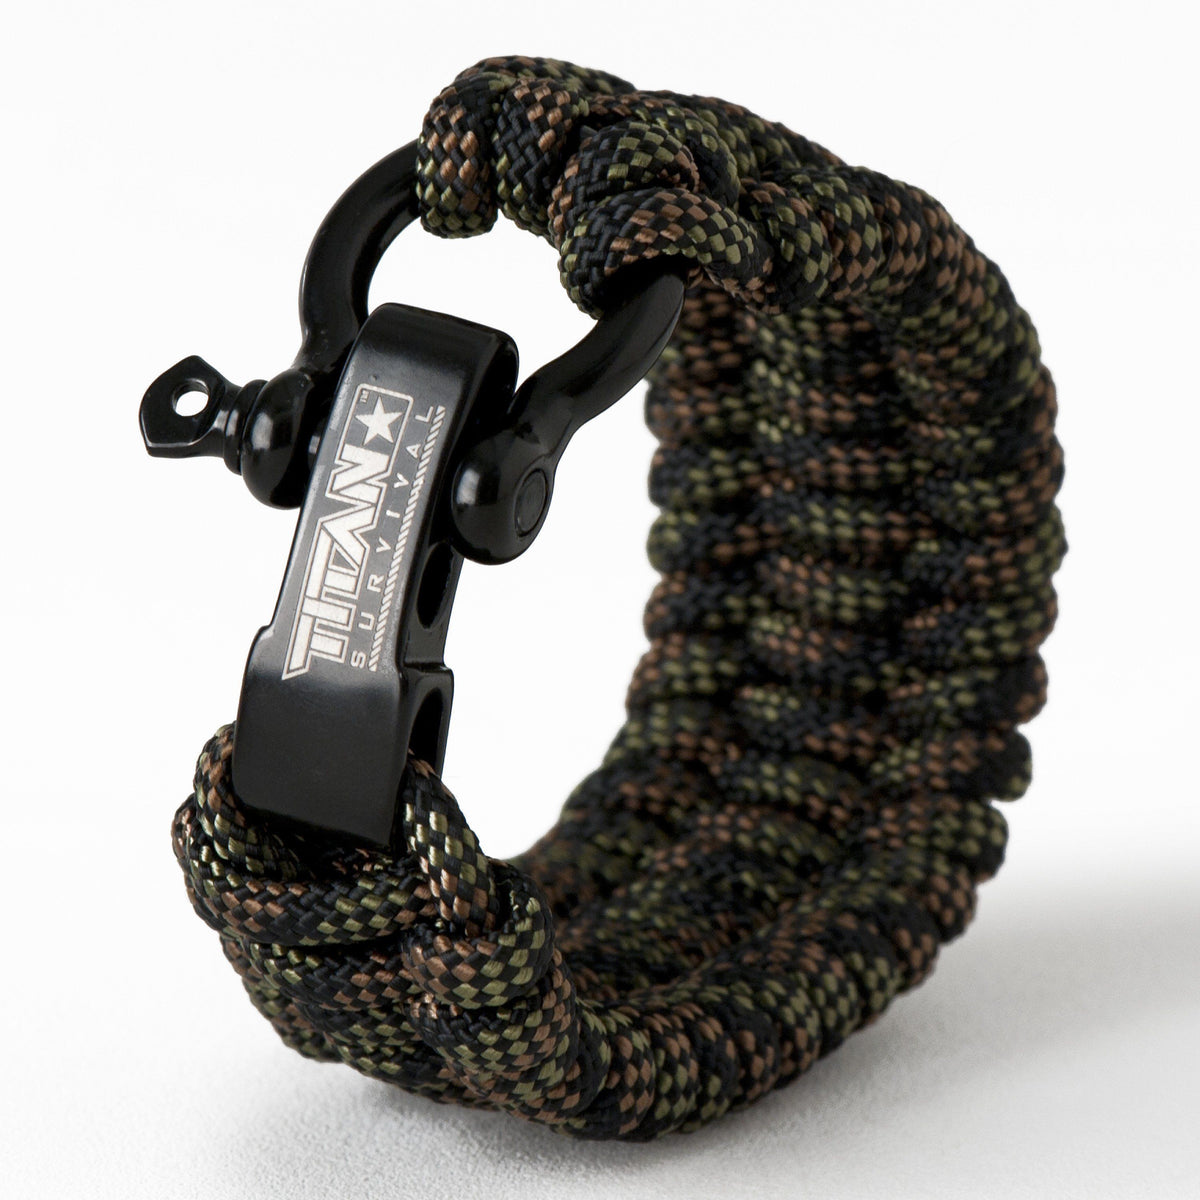 "SurvivorCord Paracord Survival Bracelet Survival Essentials Titan Survival DRAGONSCALE MED (7"" - 8"" Wrist)"